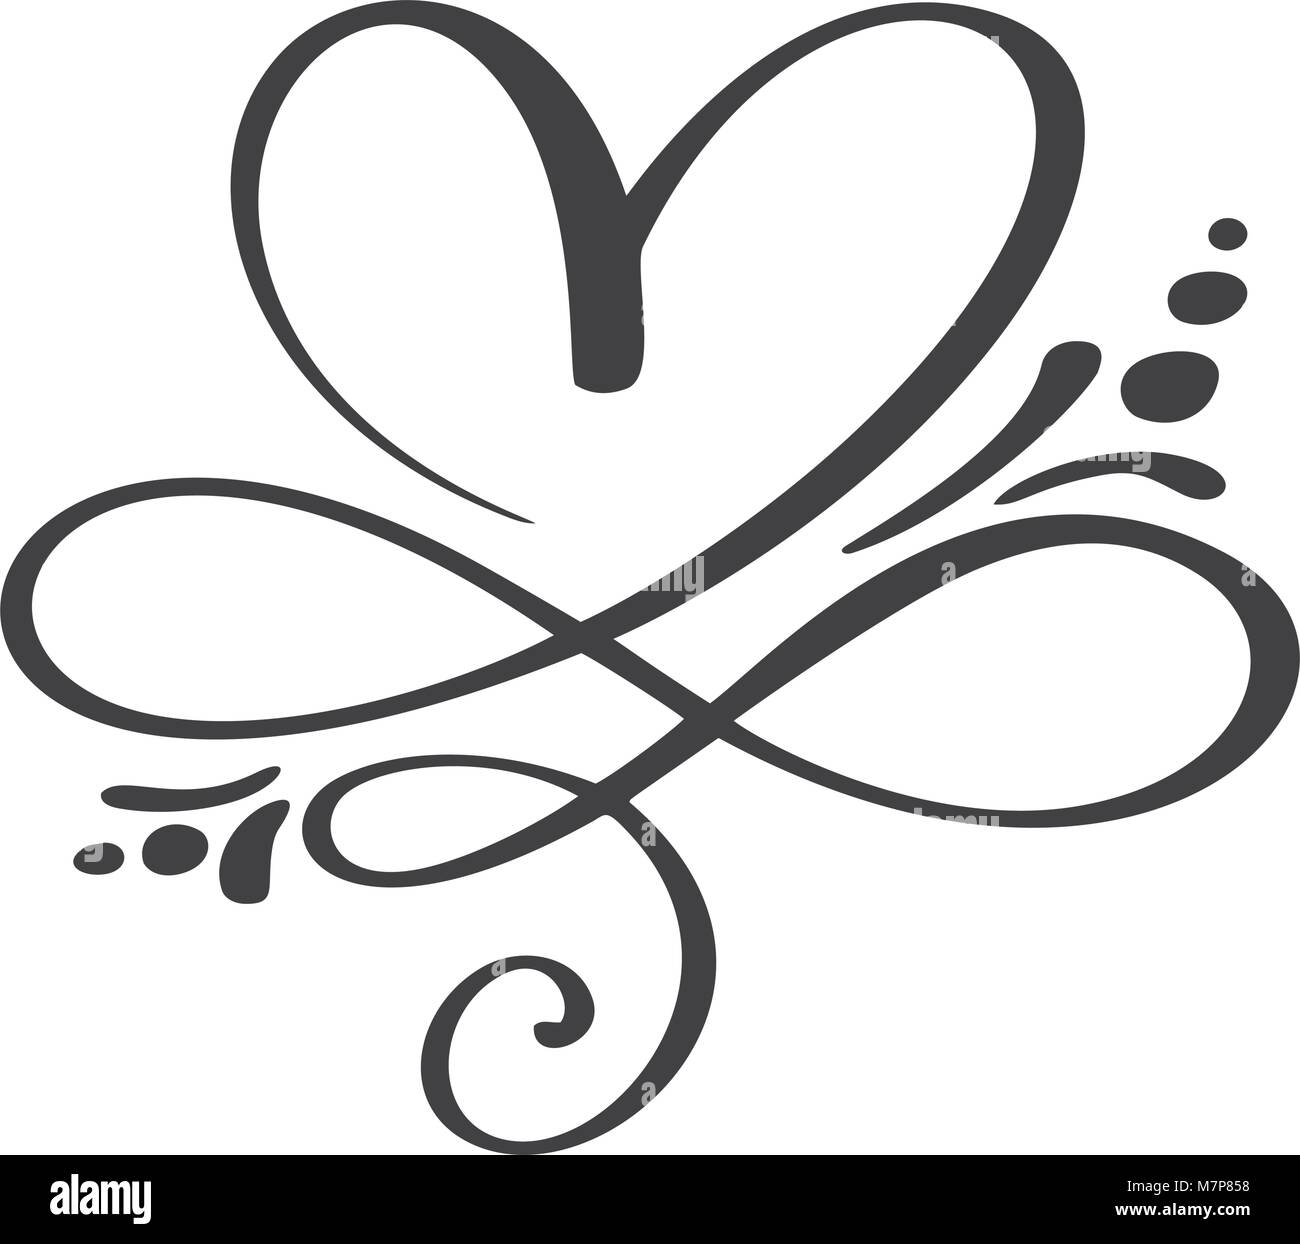 Heart Love Sign Forever Infinity Romantic Symbol Linked Join Stock